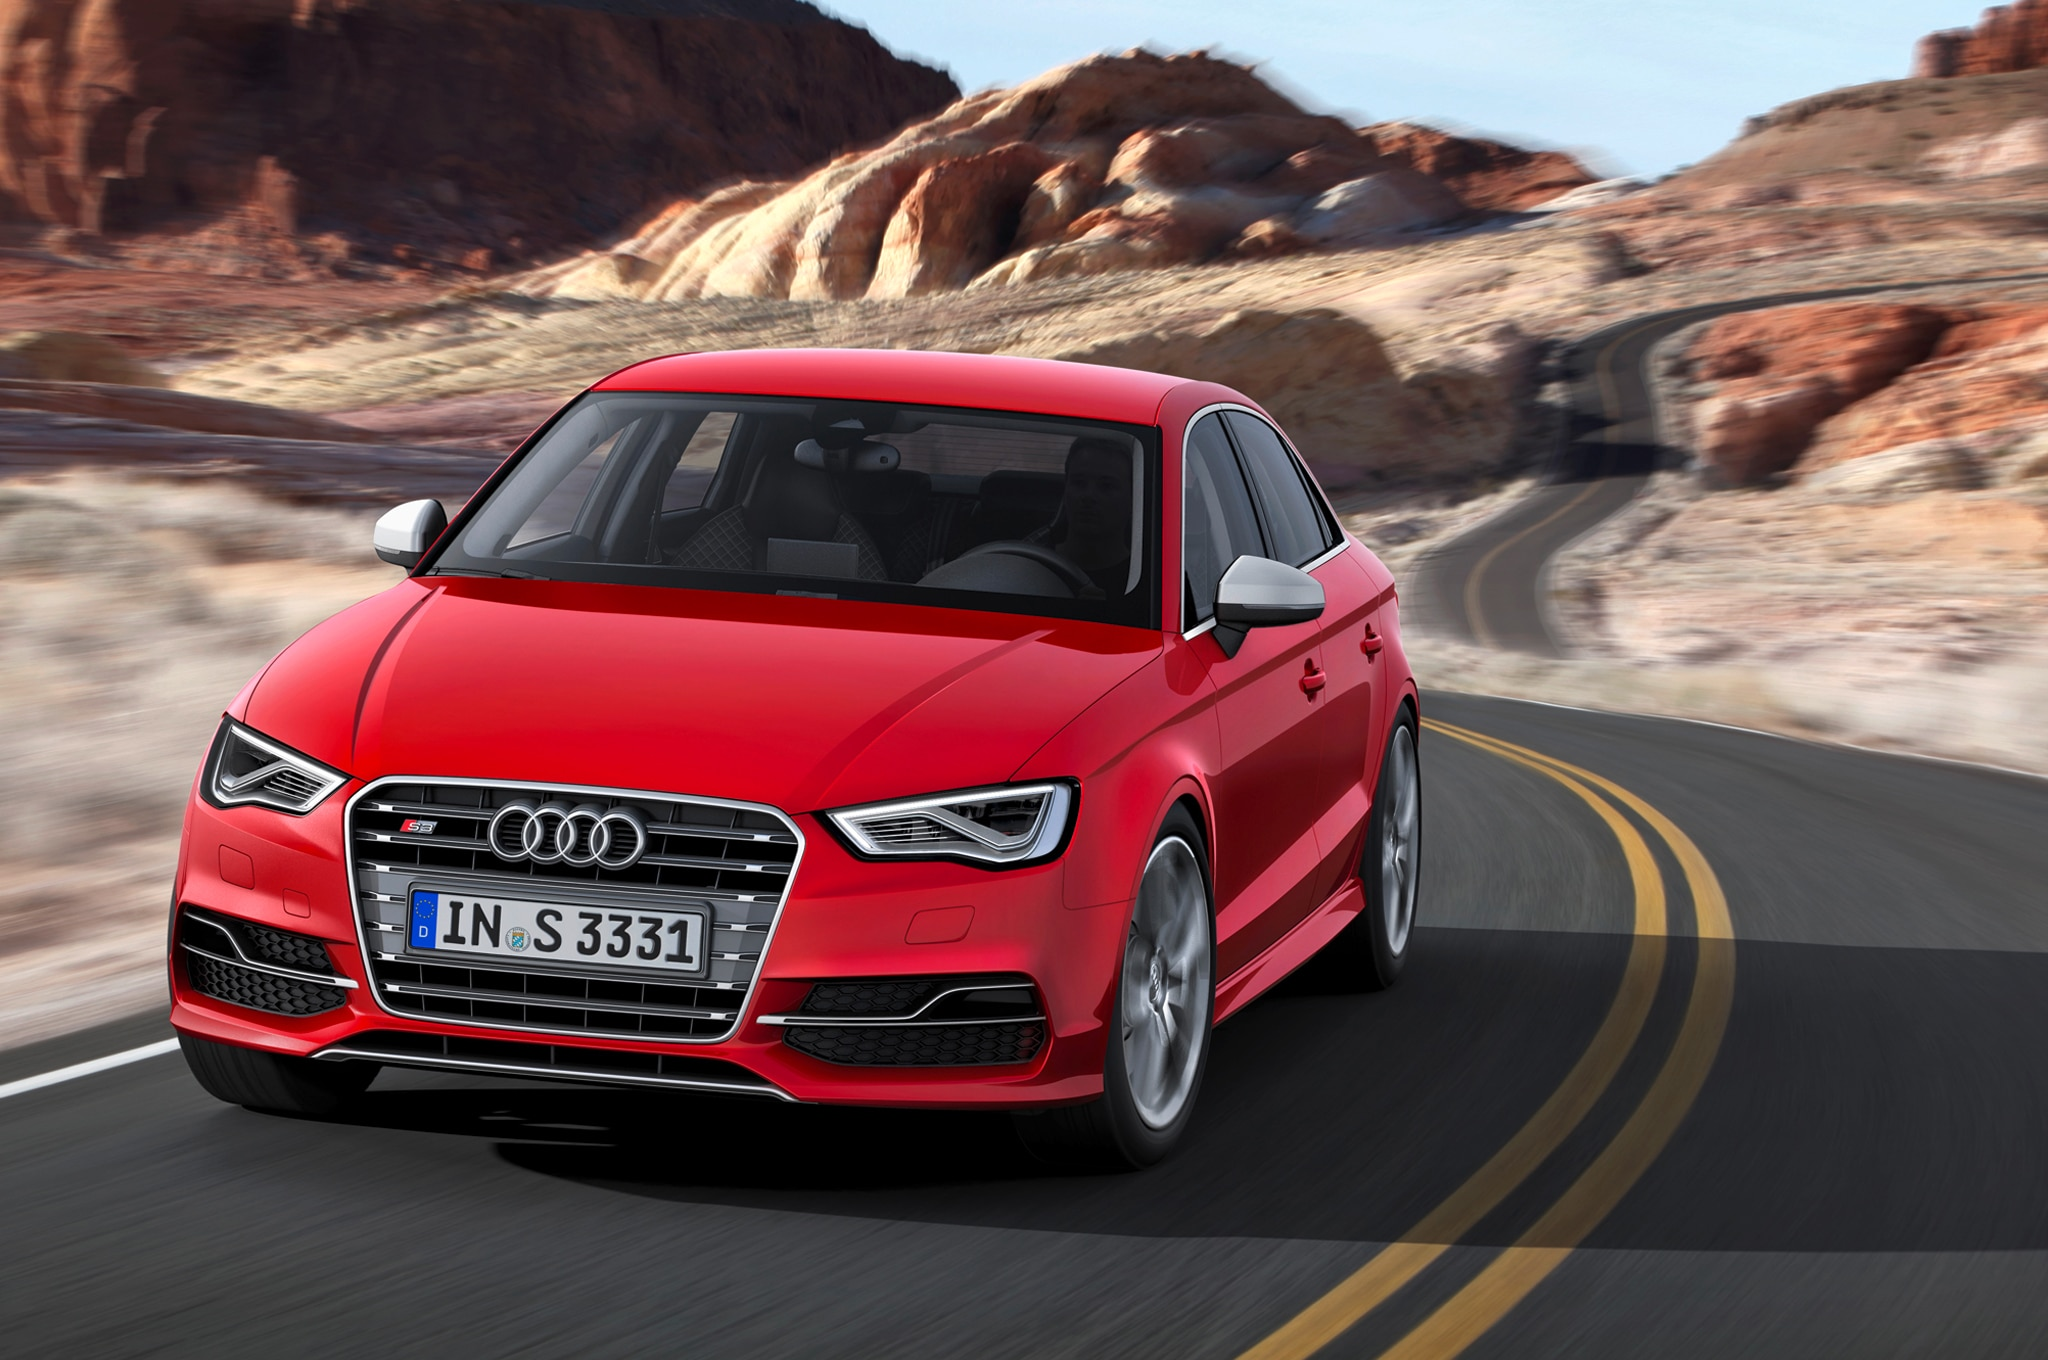 2015 Audi S3 Front View 061